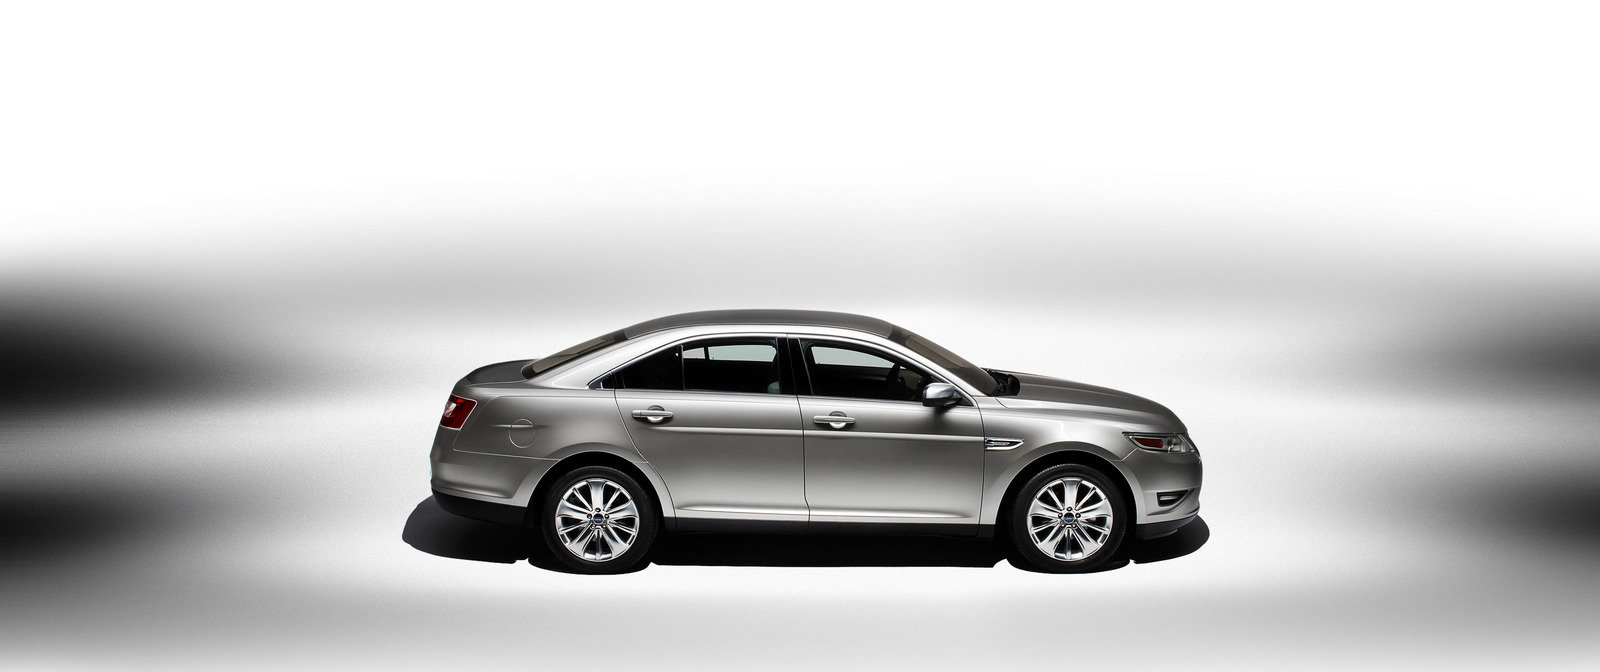 2010 ford taurus sho picture 306537 car review top speed. Black Bedroom Furniture Sets. Home Design Ideas